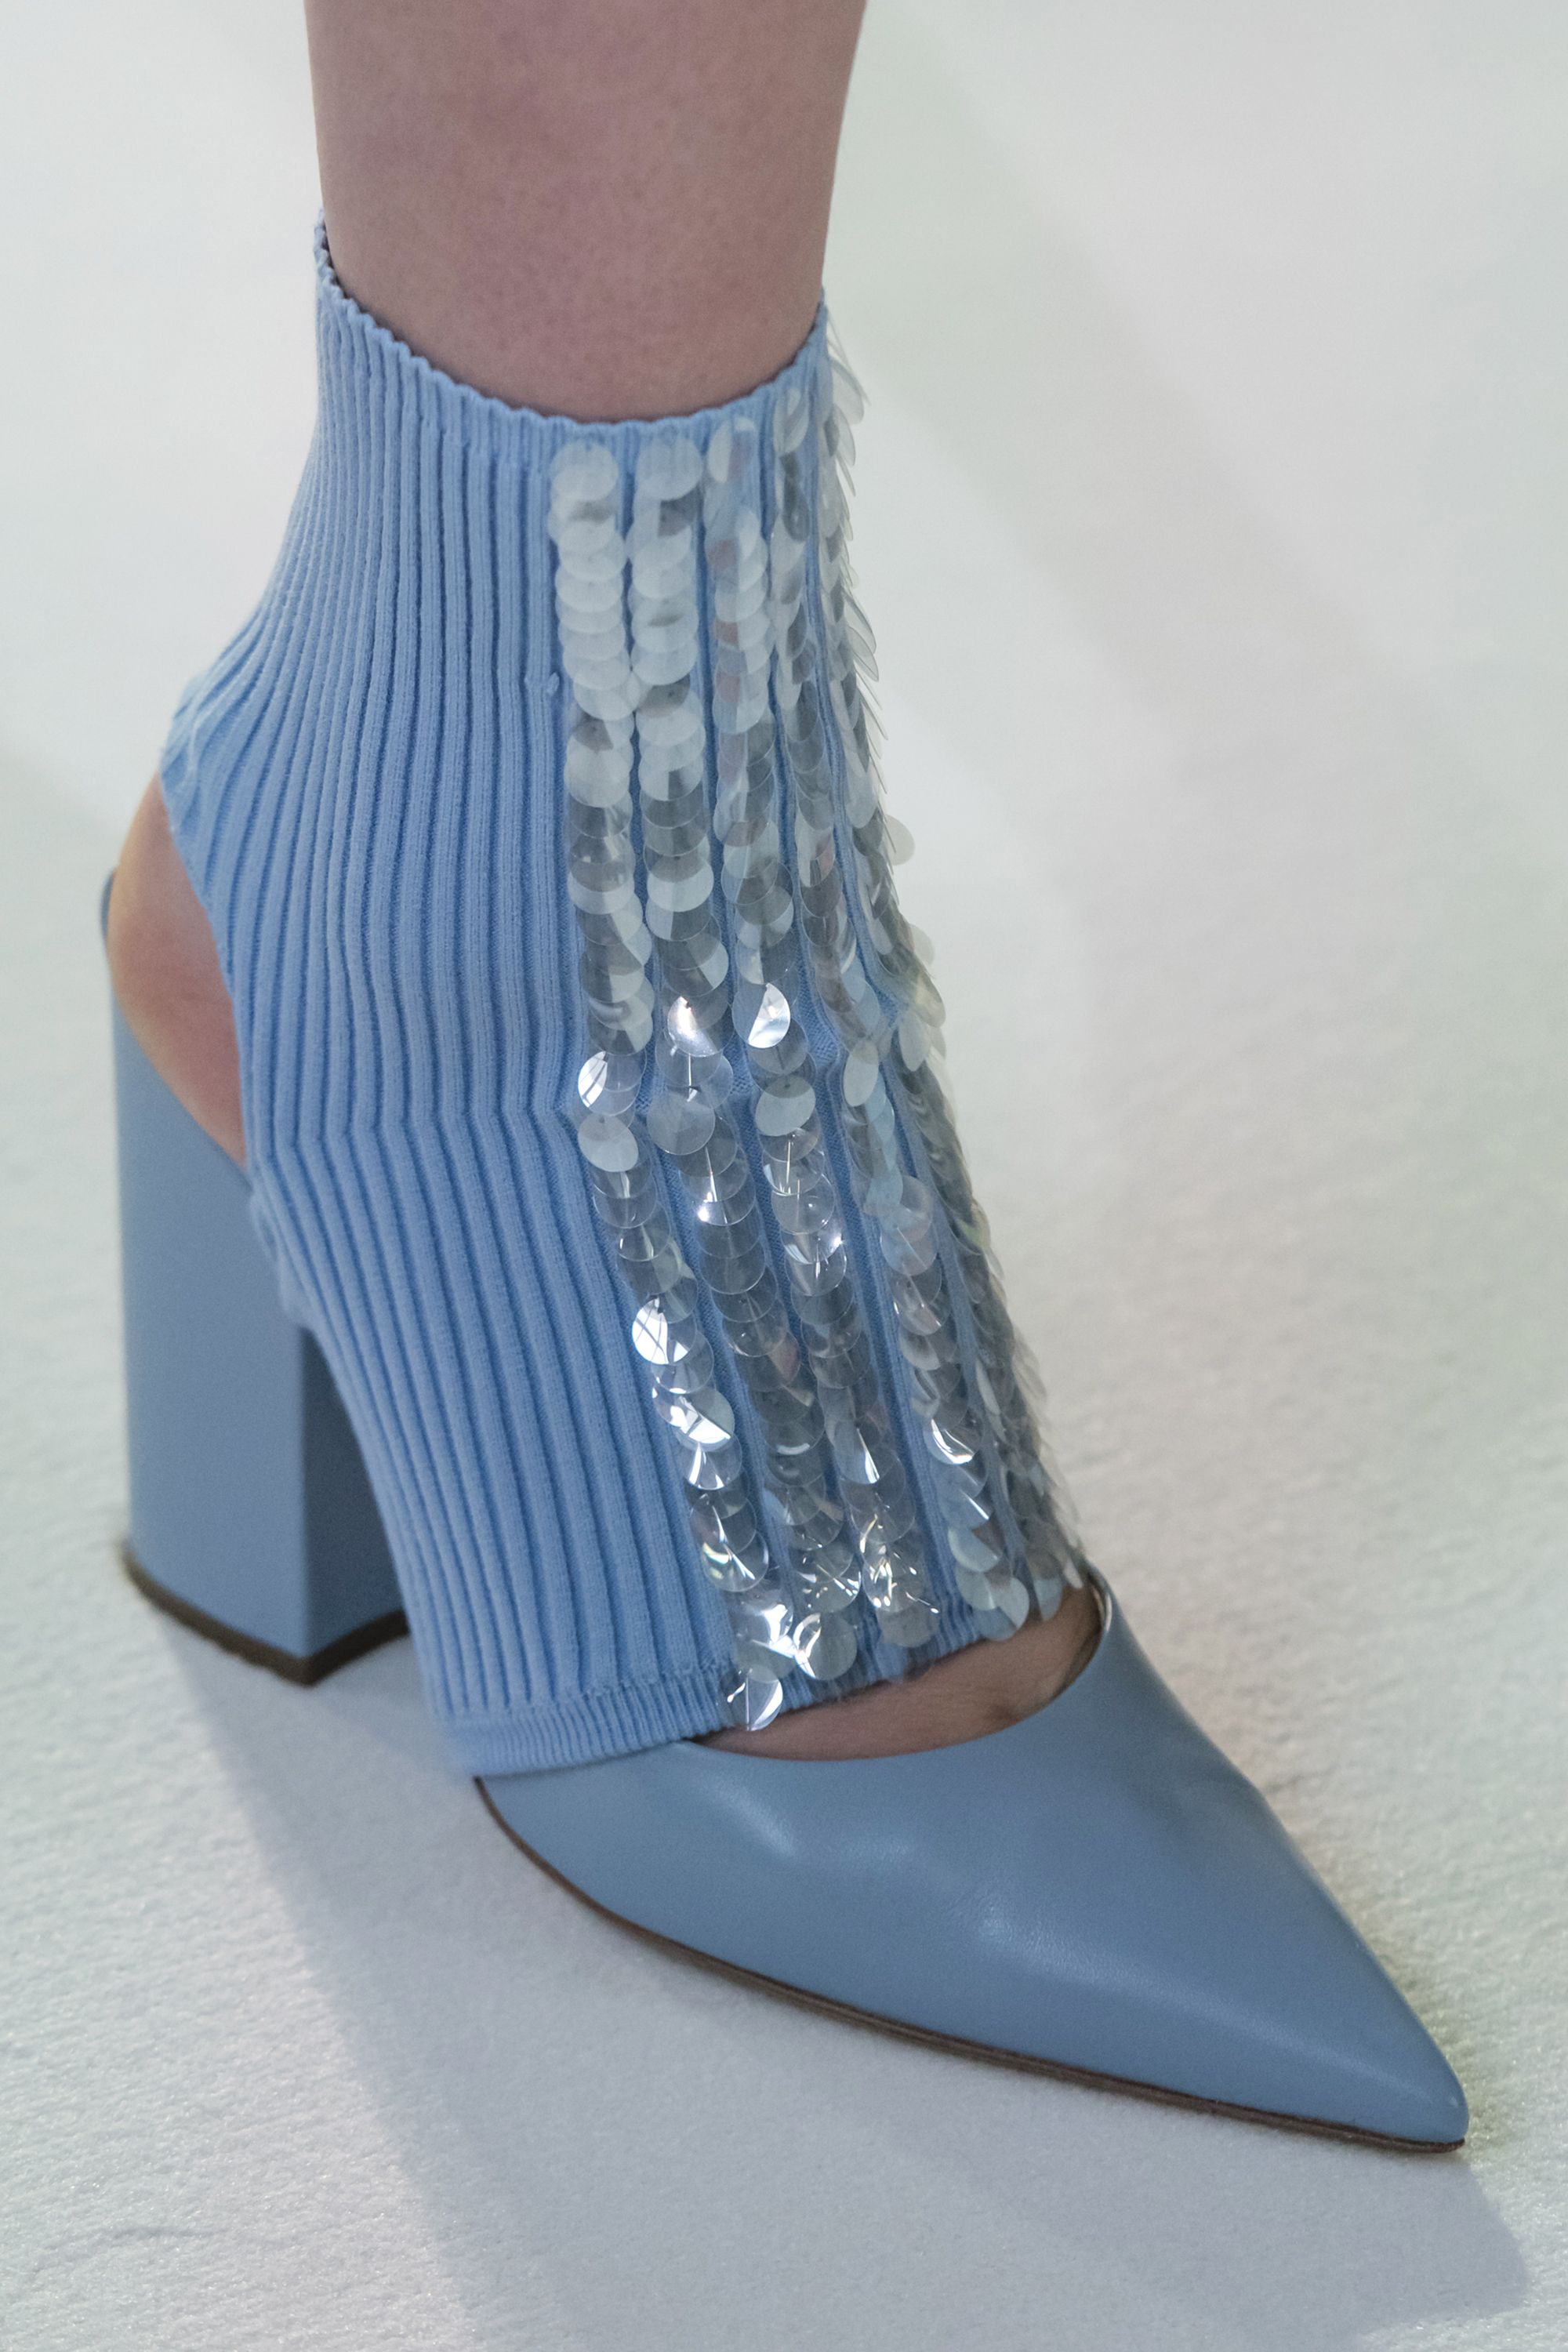 hbz-london-2018-shoe-trends-delpozo-clp-rf18-0435-1519162266.jpg (2000×3000)